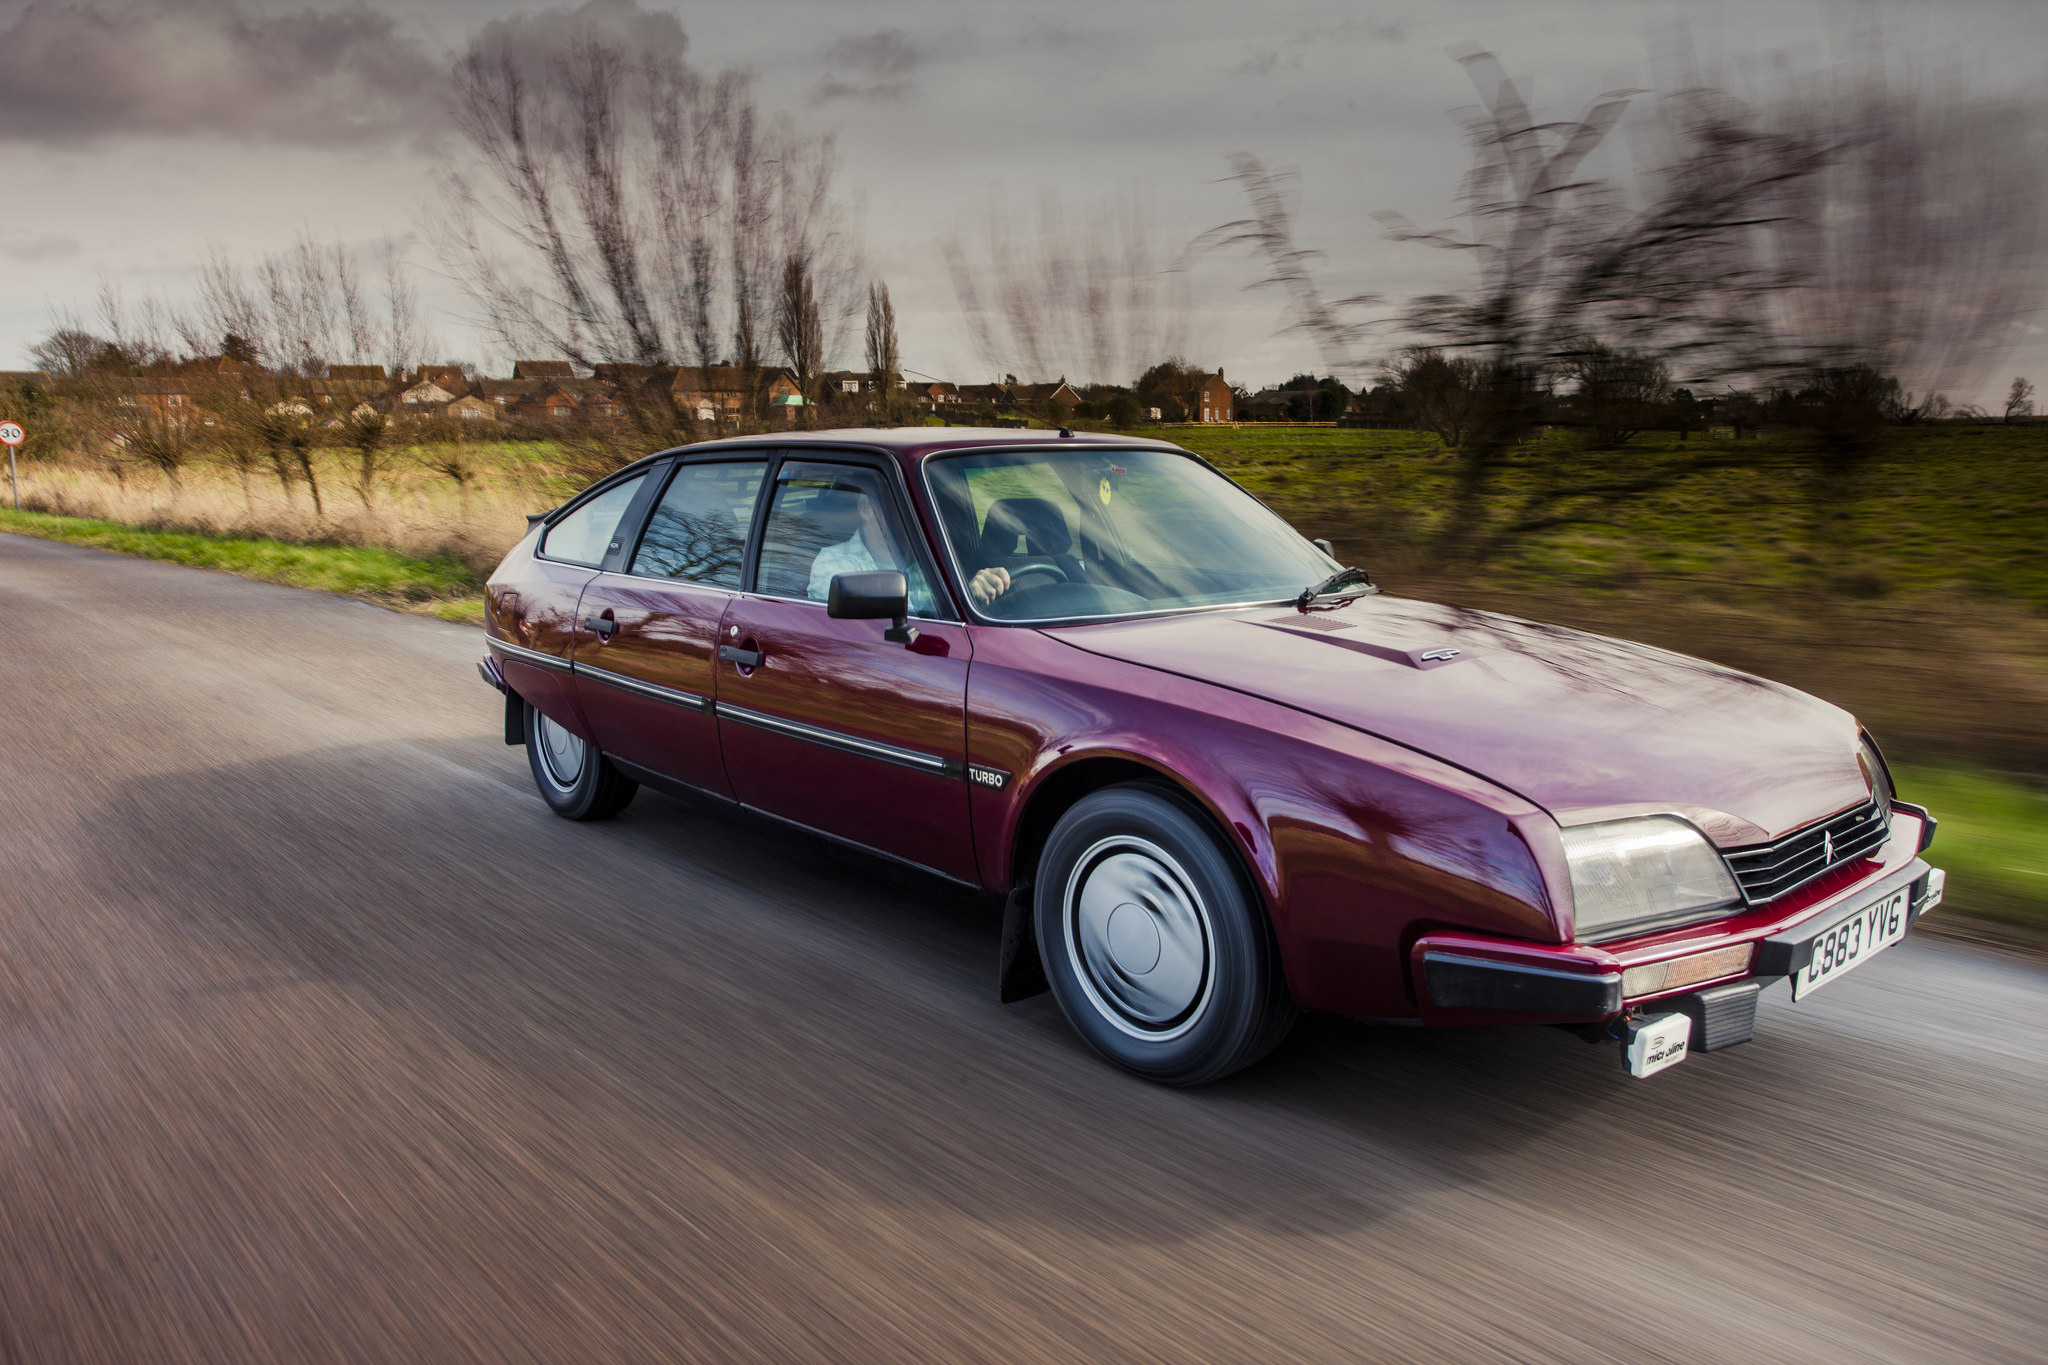 1984 Citroen CX GTi Turbo series 1 road-test drive